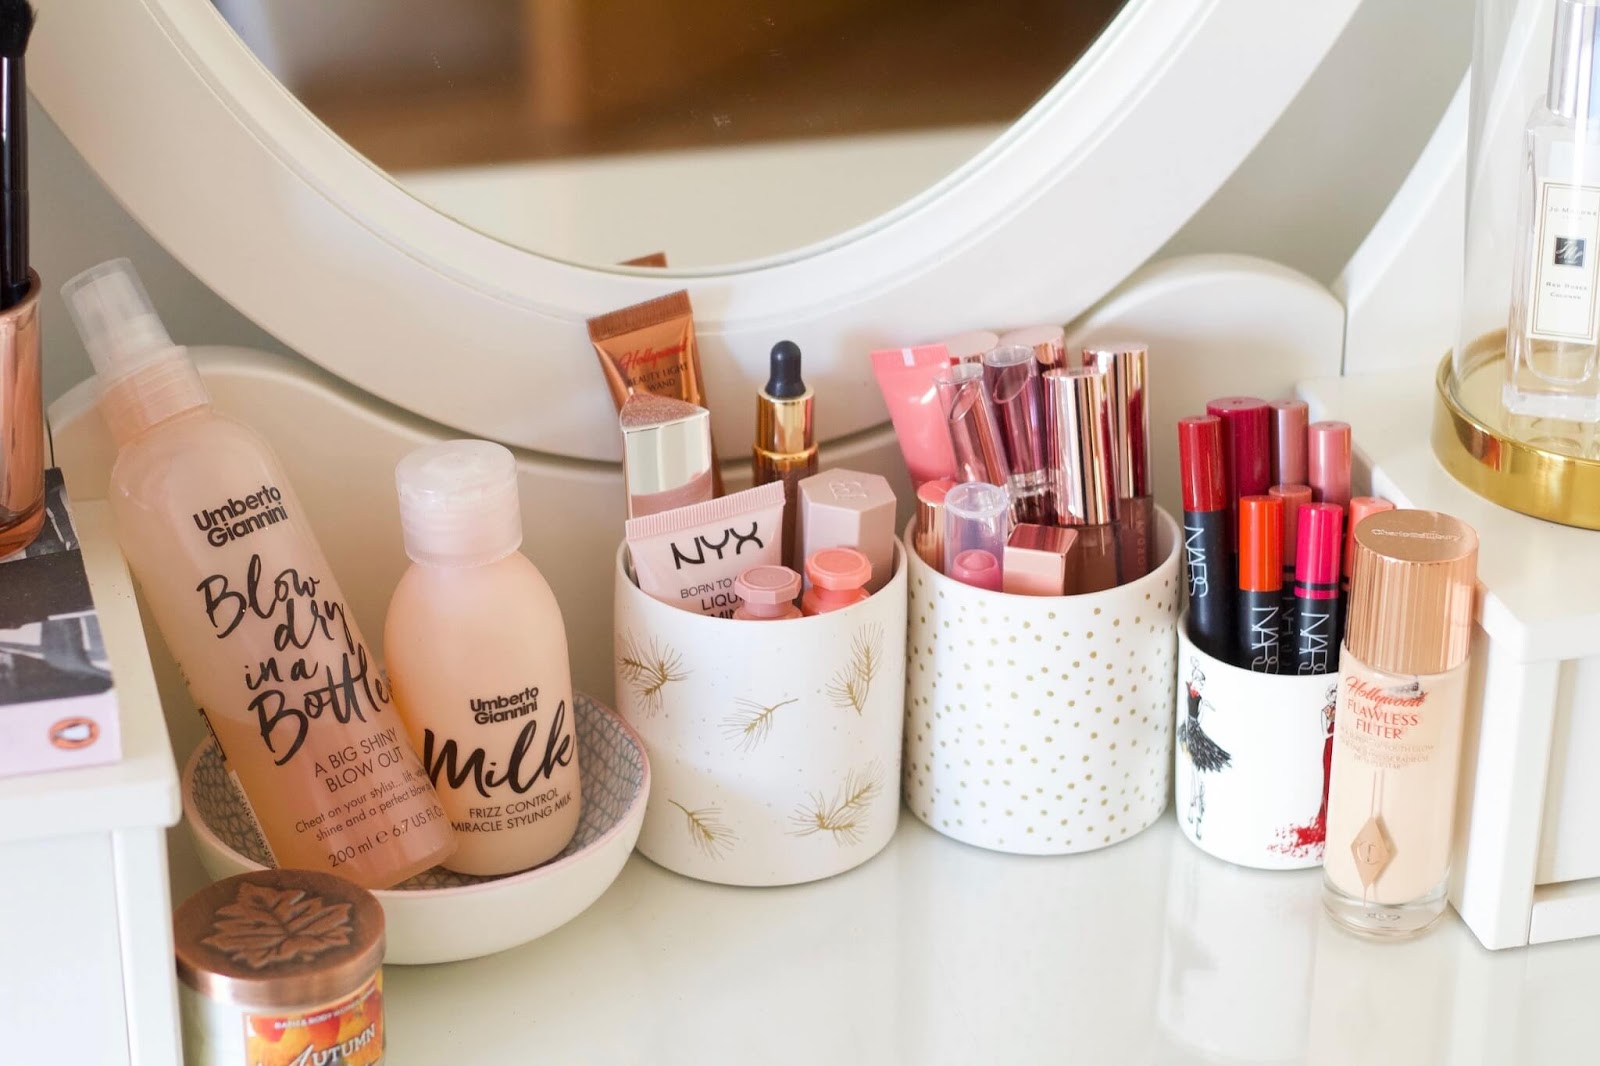 Makeup storage tips